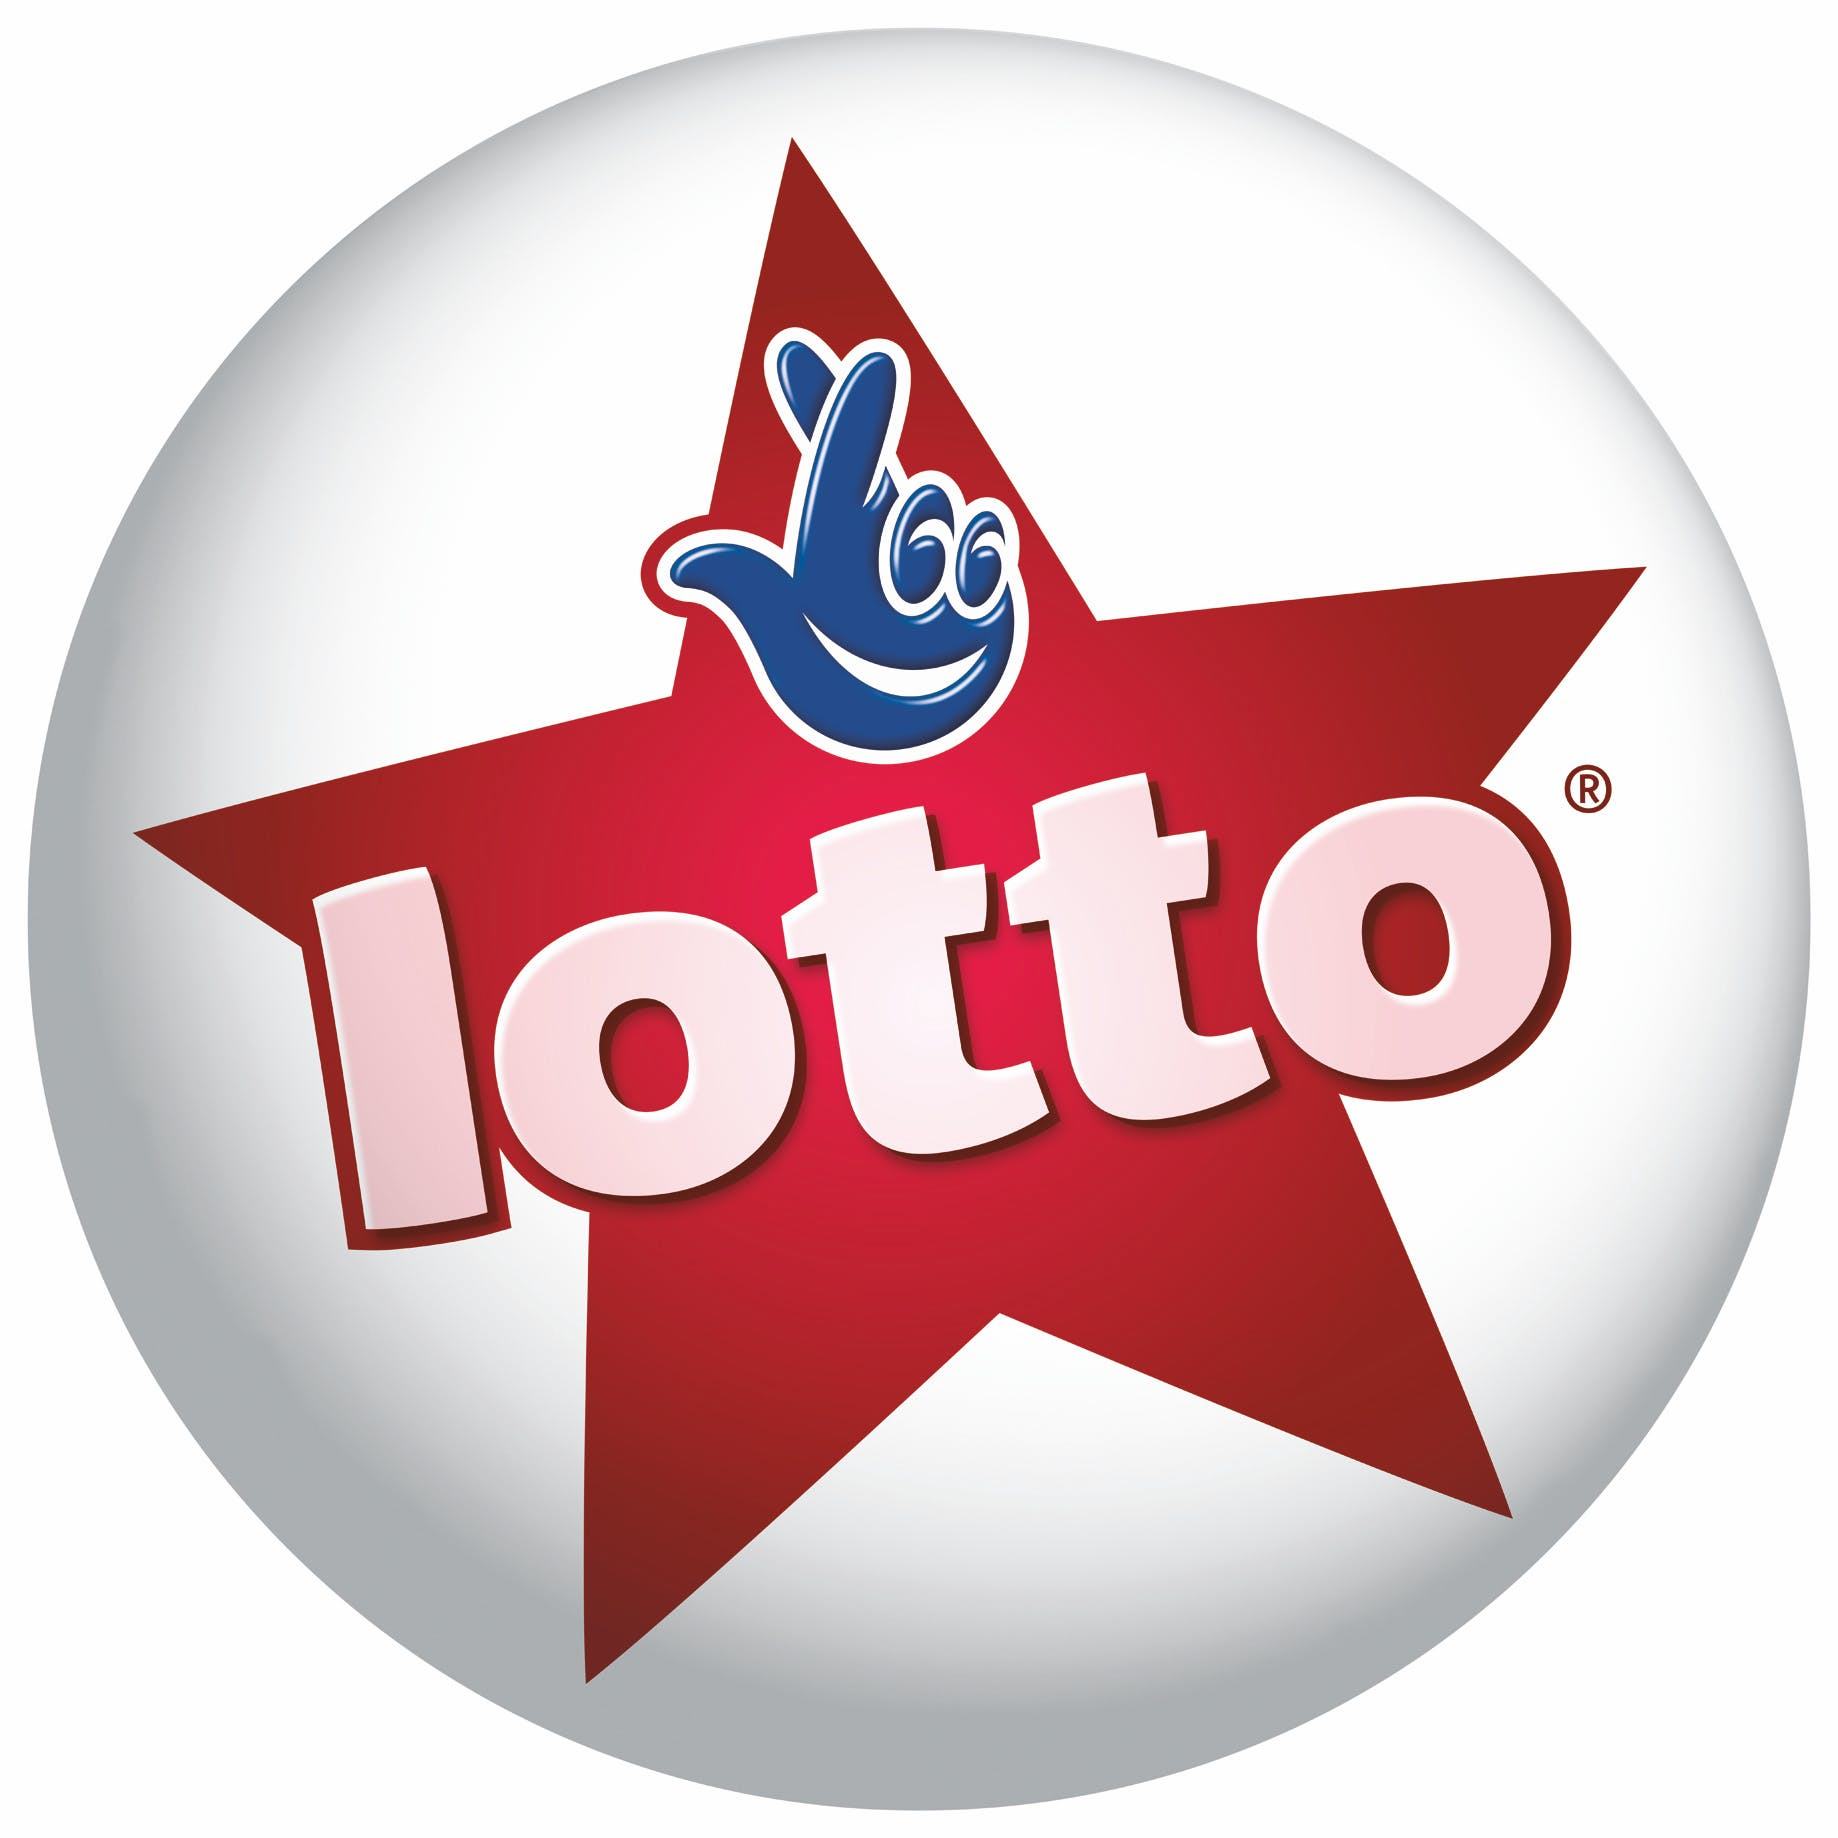 Camelot-lotto-logo-2013.304